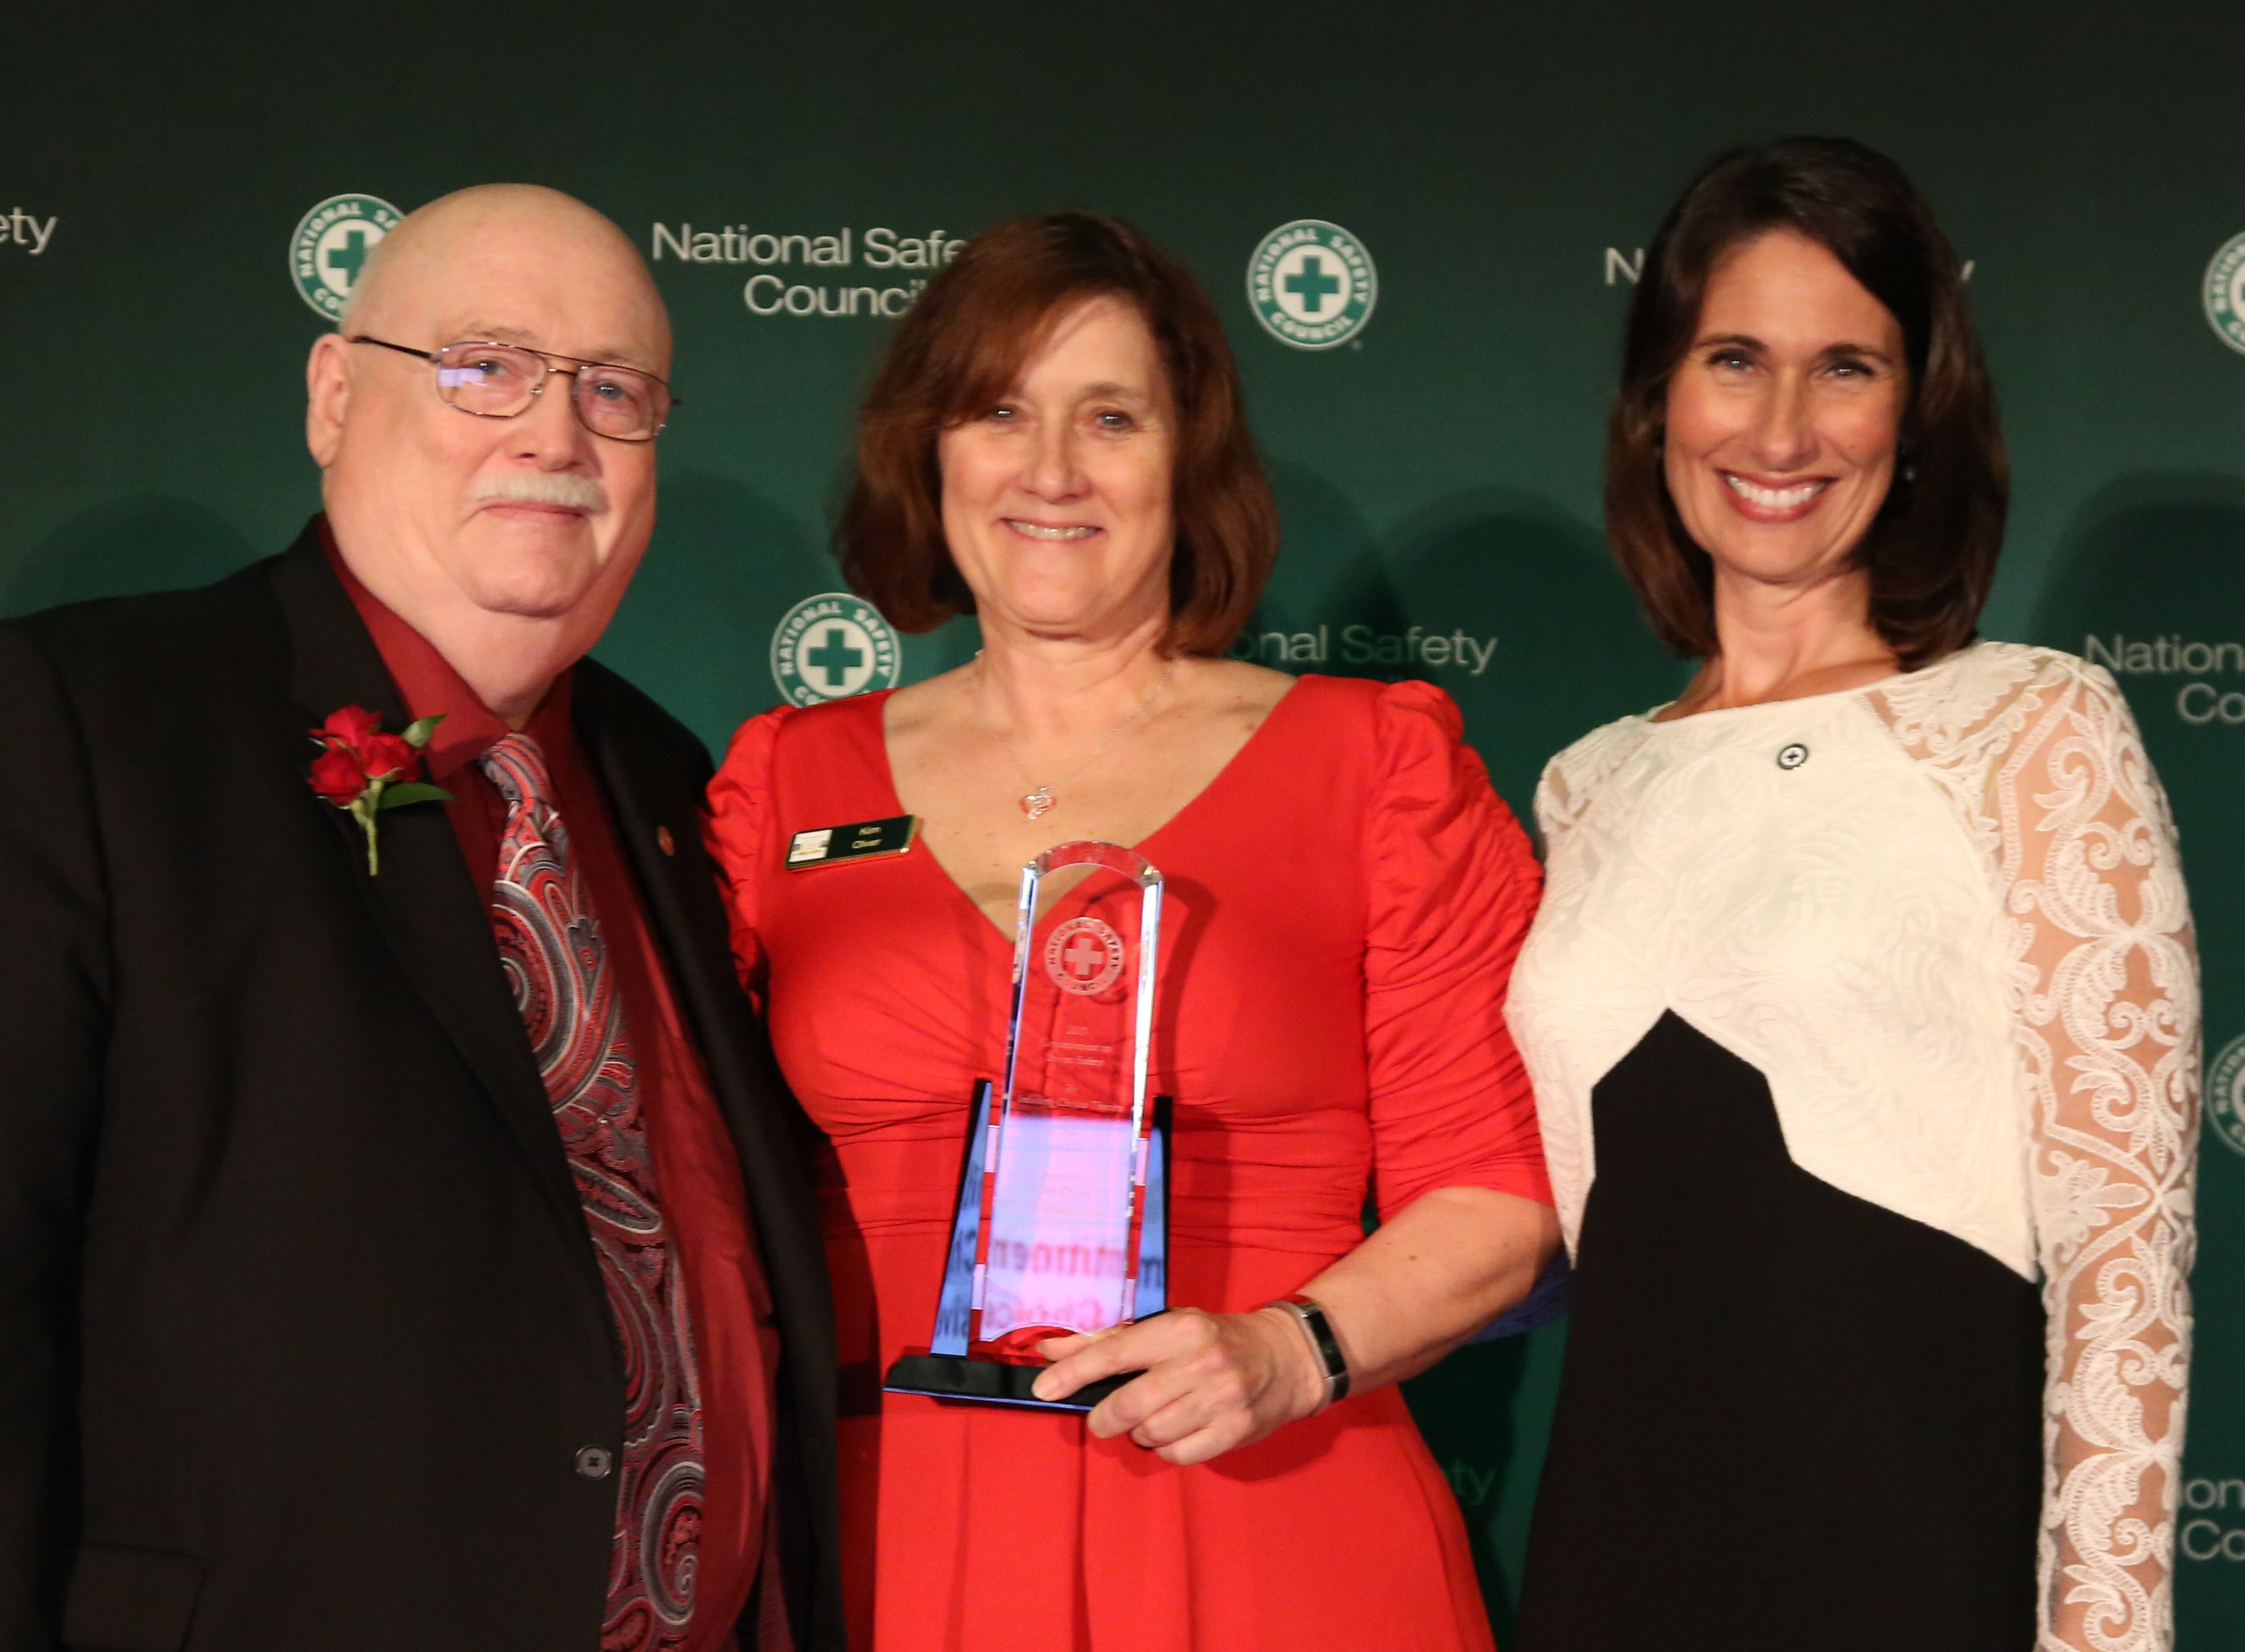 Kim Olver Receives National Commitment to Driver Safety Award